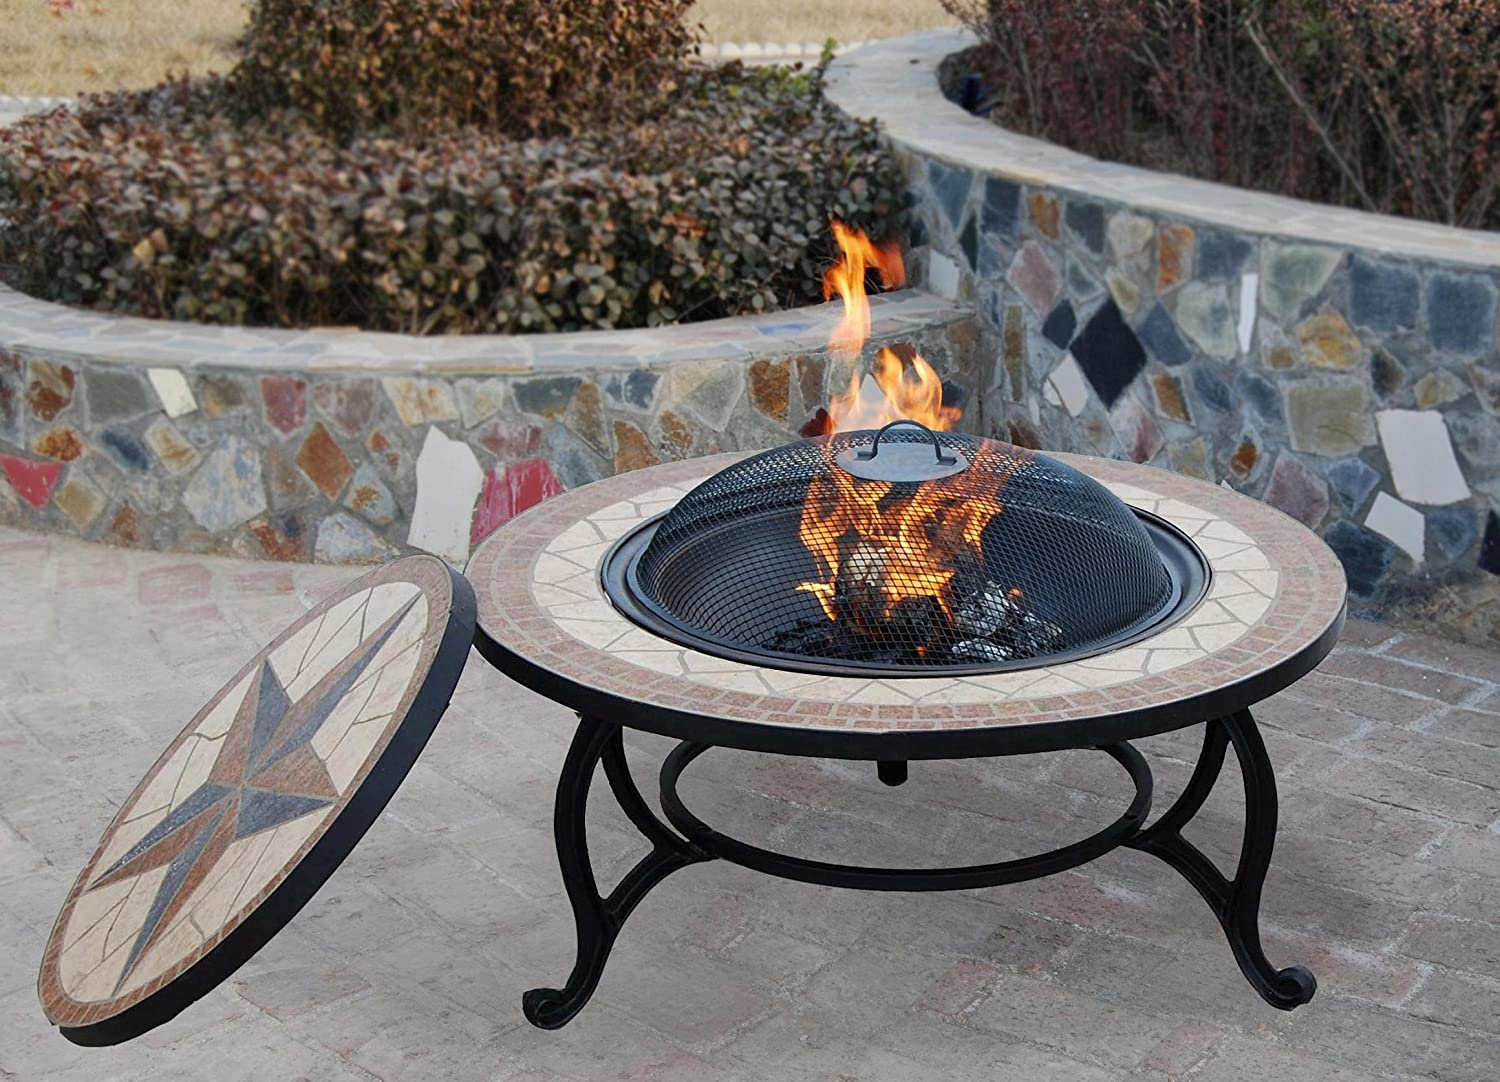 Best Fire Pits in UK